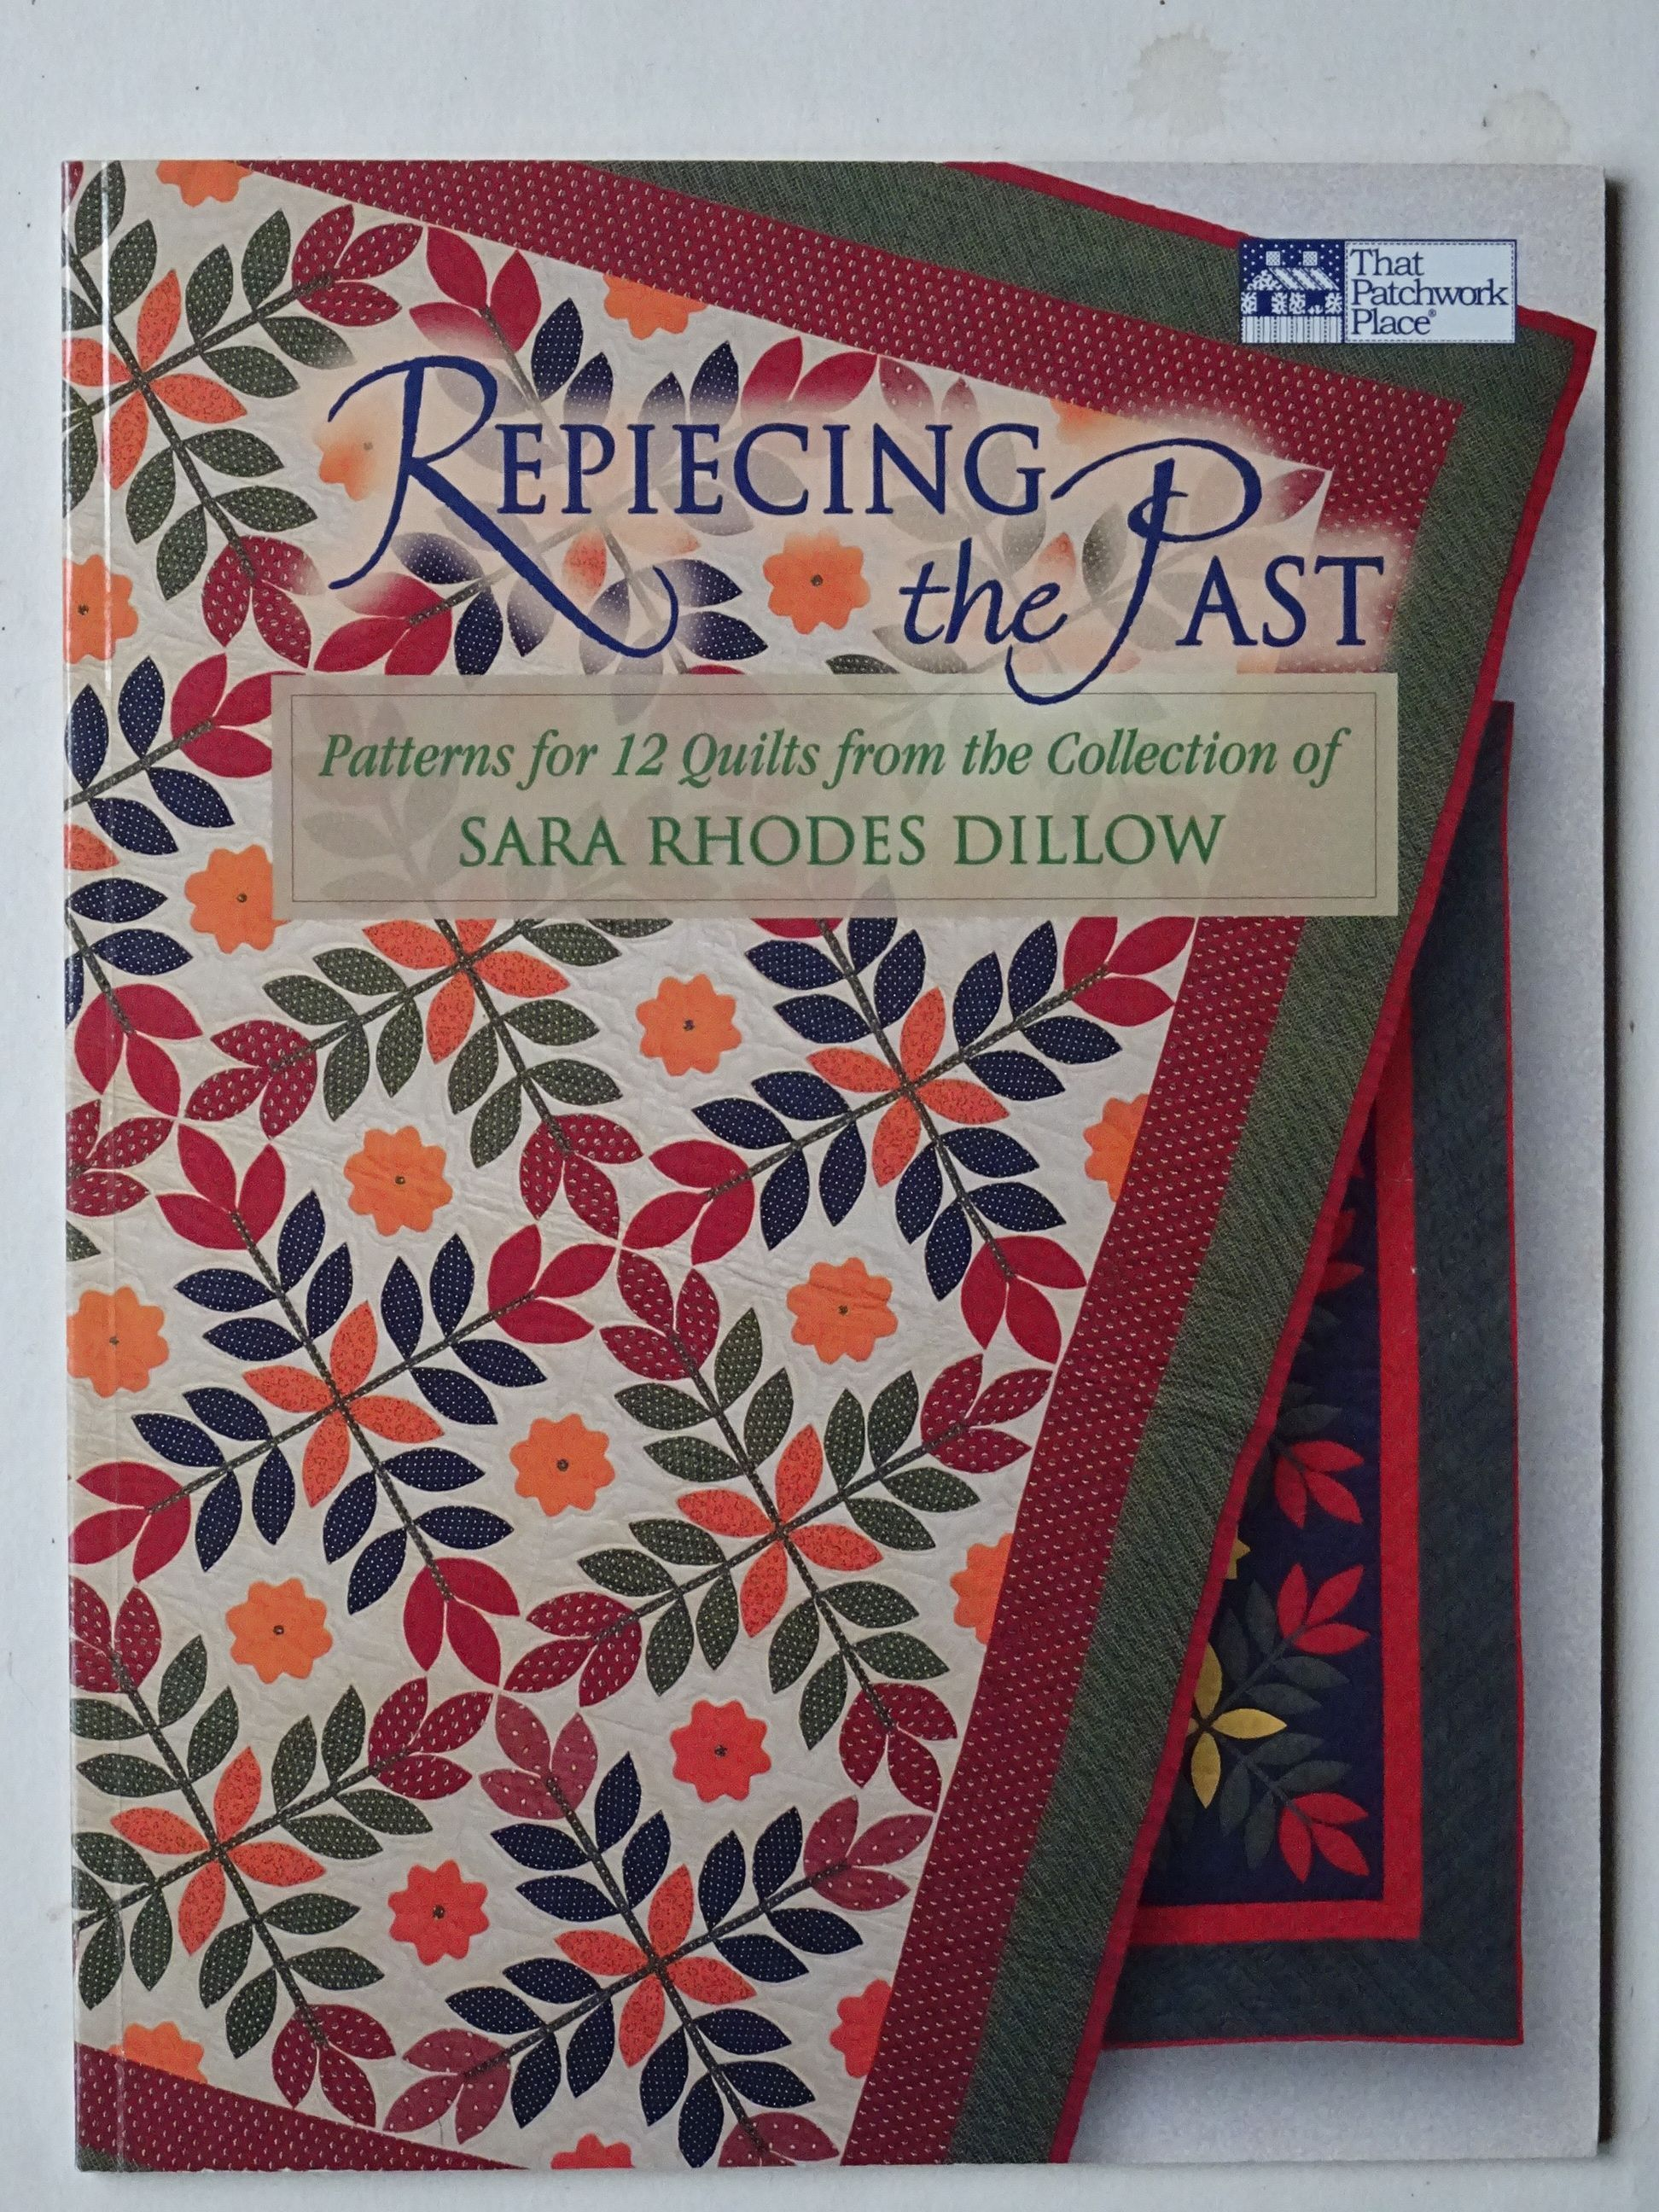 Repiecing the Past – Rhodes Dillow, Sara